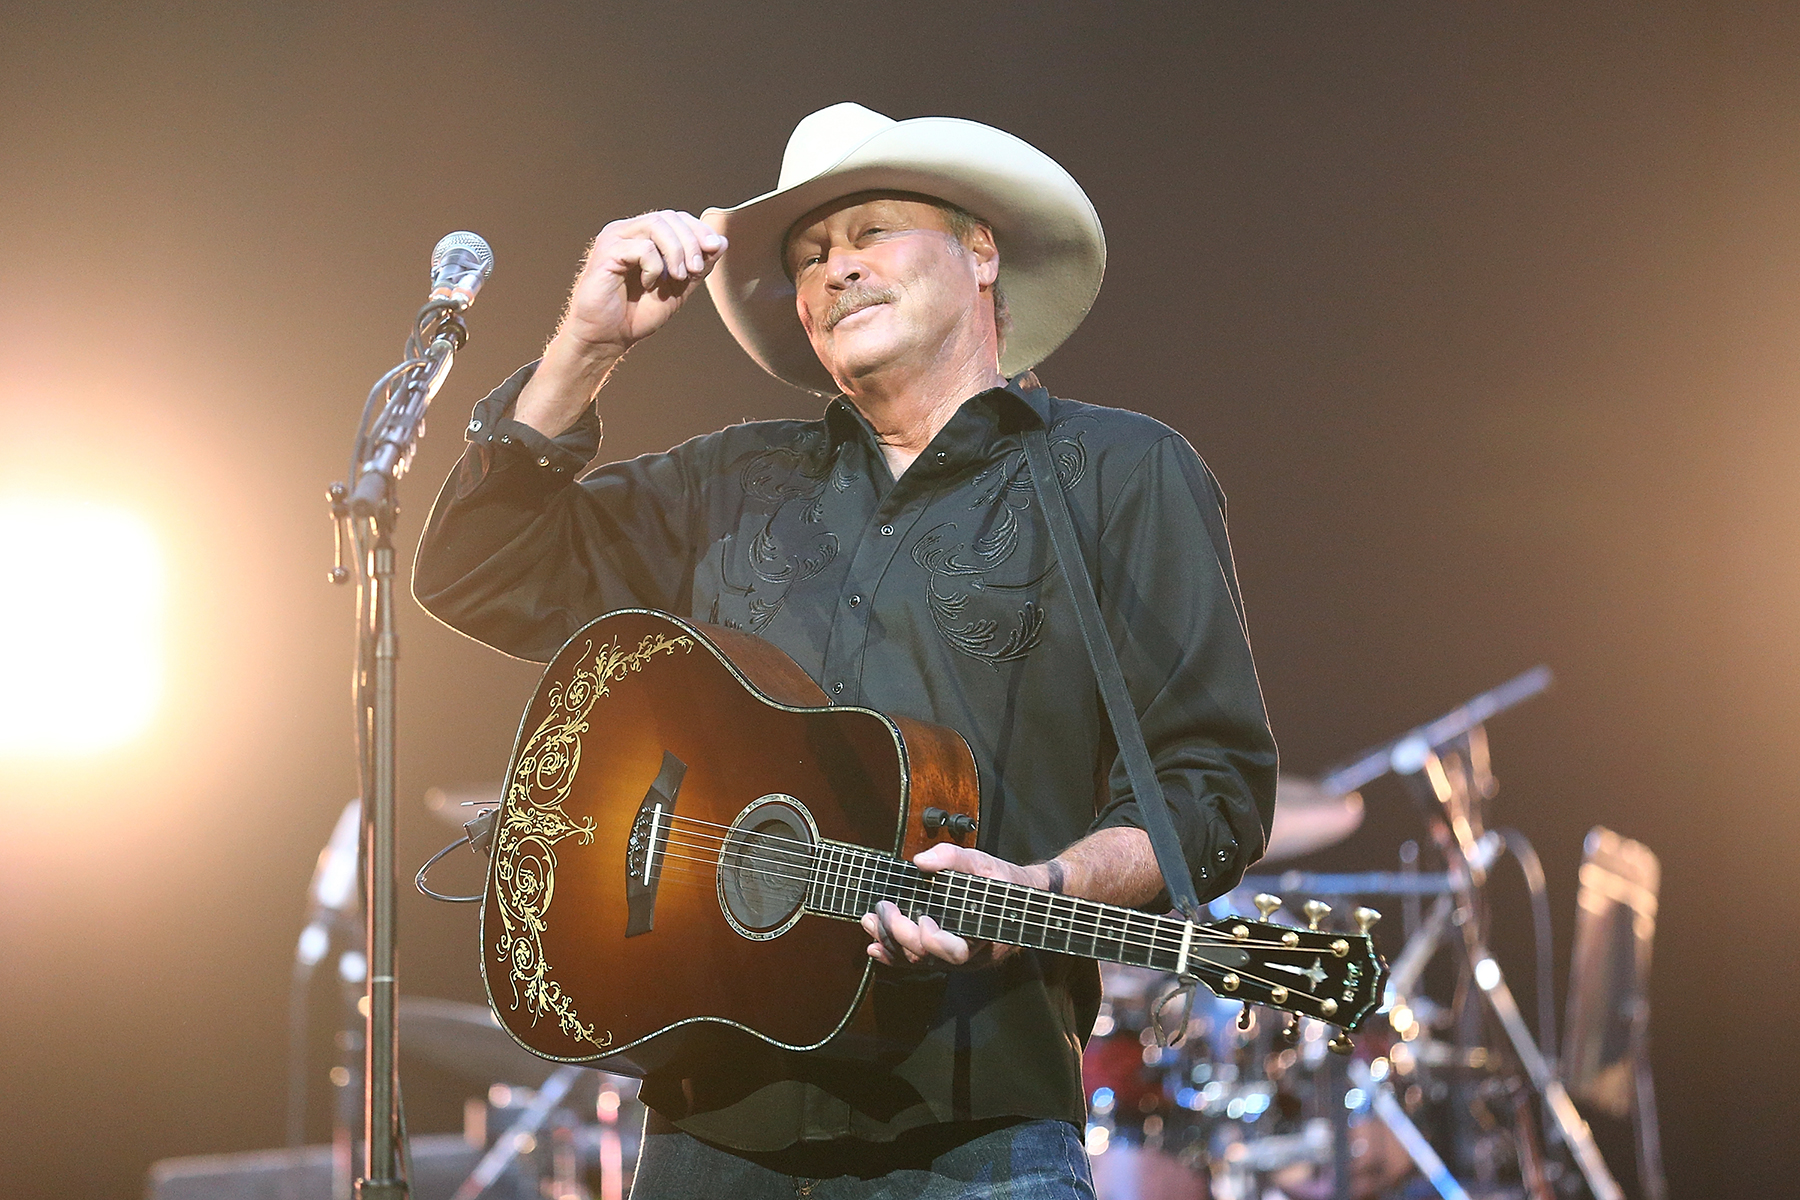 ANAHEIM, CA - APRIL 16:  Alan Jackson performs at Honda Center on April 16, 2016 in Anaheim, California.  (Photo by Phillip Faraone/Getty Images)